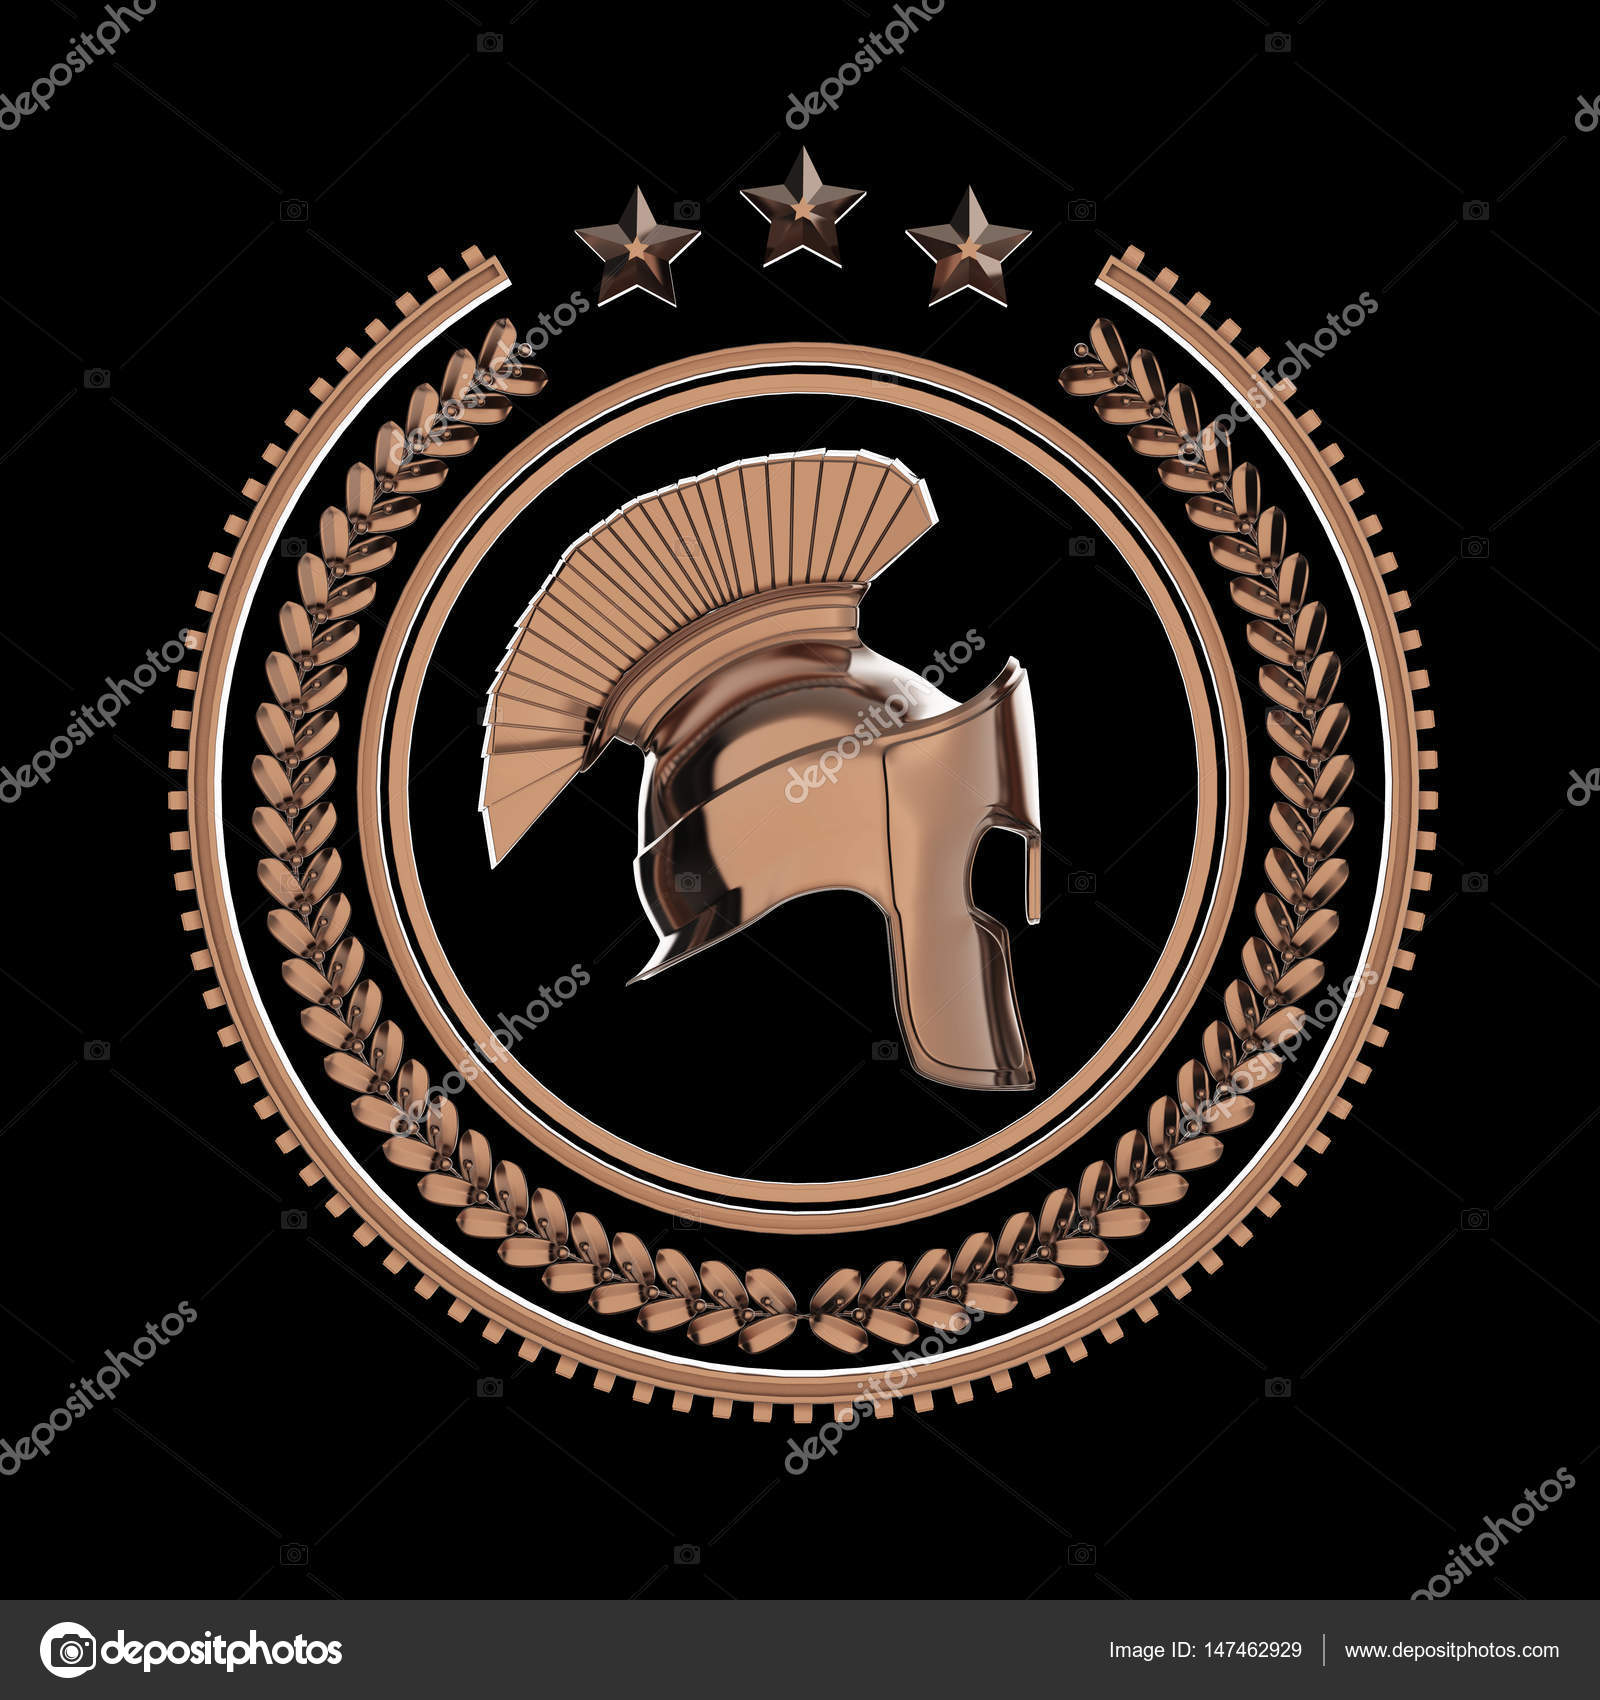 High Detailed Spartan Roman Greek Helmet In Laurel Wreath Badge With Rings And Stars